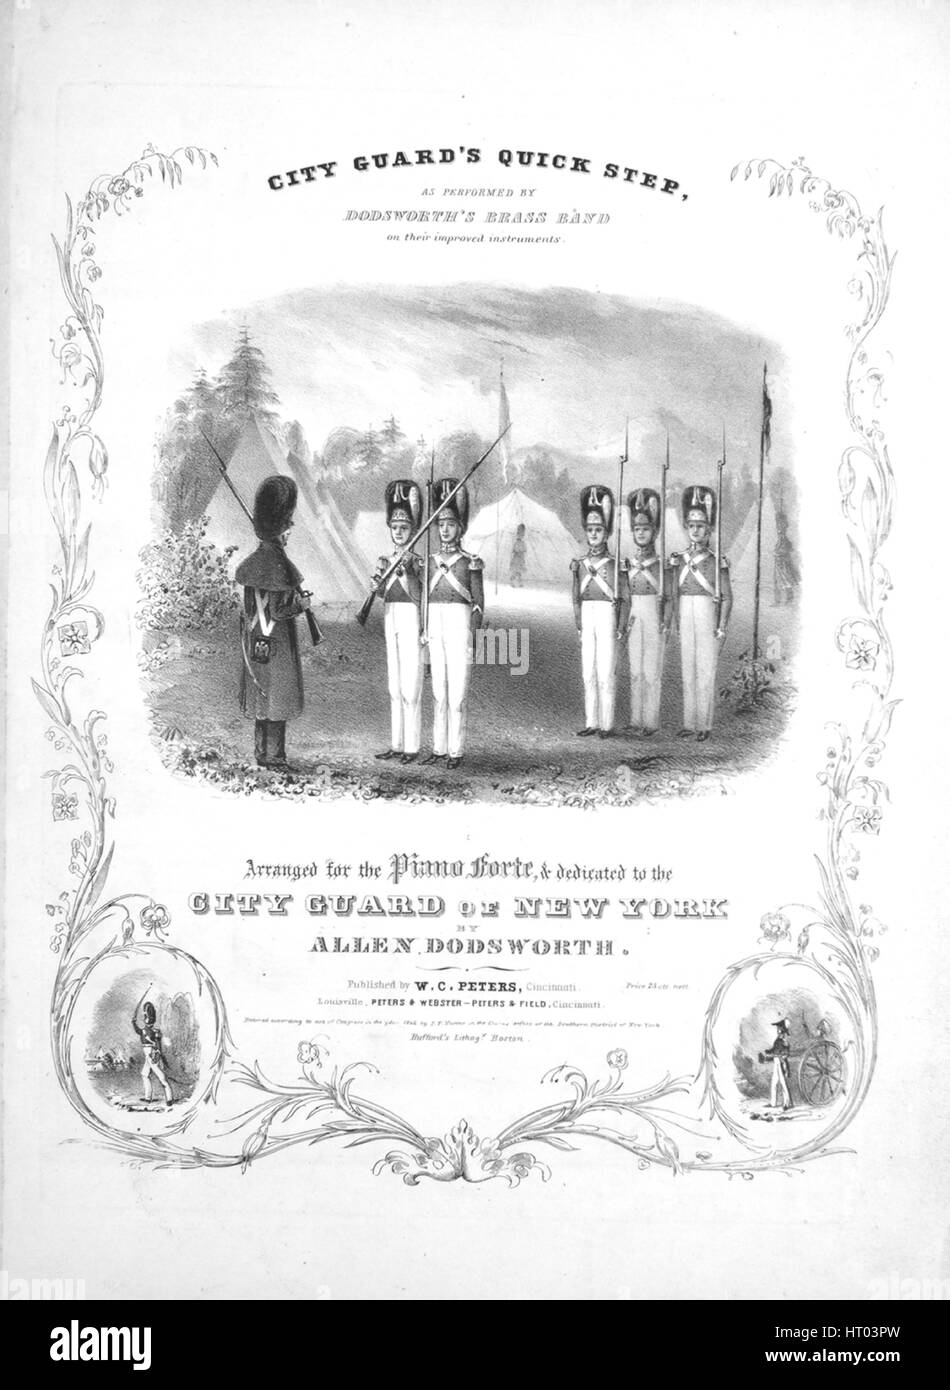 Sheet music cover image of the song 'City Guard's Quick Step', with original authorship notes reading - Stock Image